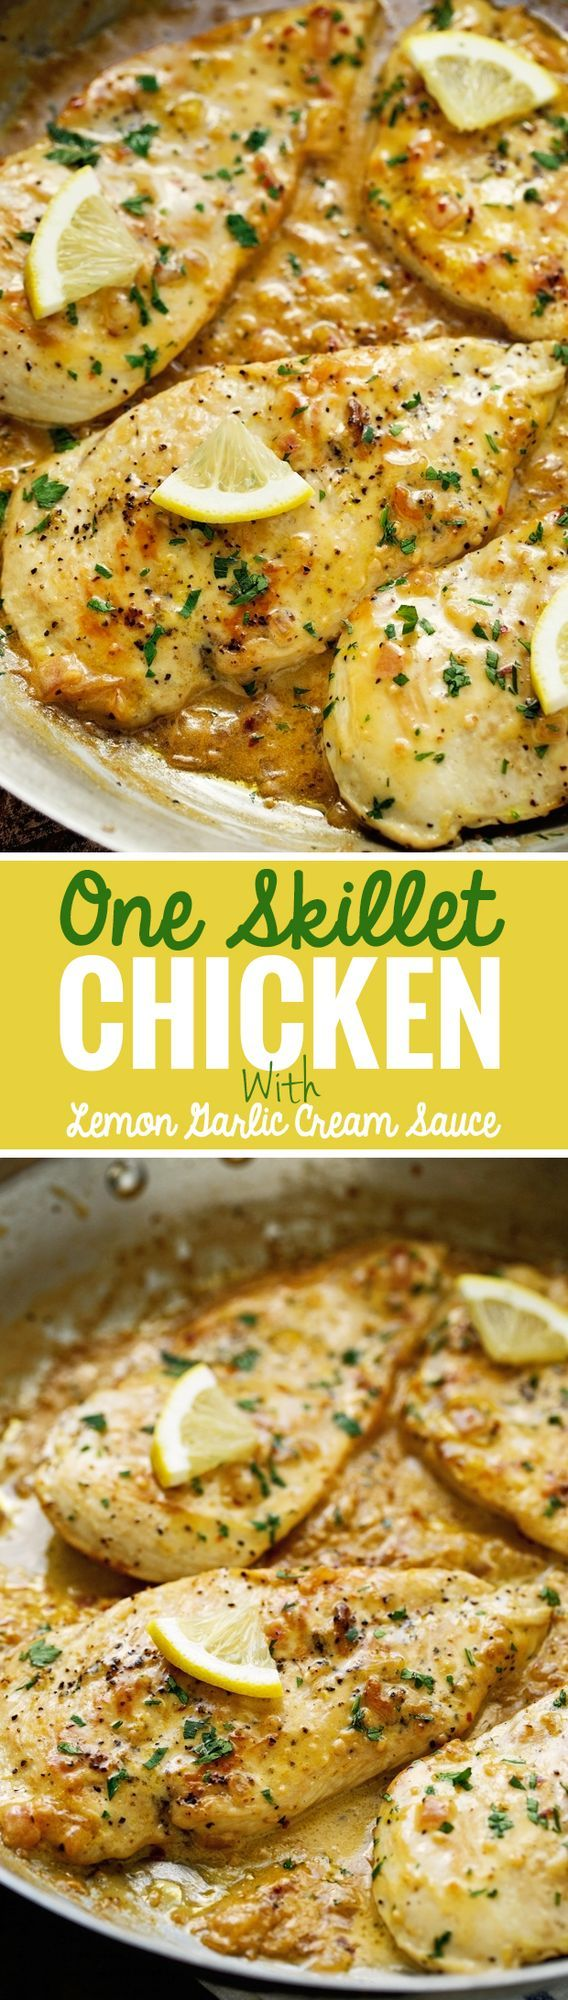 Say hello to your new favorite one skillet chicken dinner that's topped with a lemon garlic butter cream sauce! I used thin chicken breasts but this recipe would be delicious with boneless chicken thi